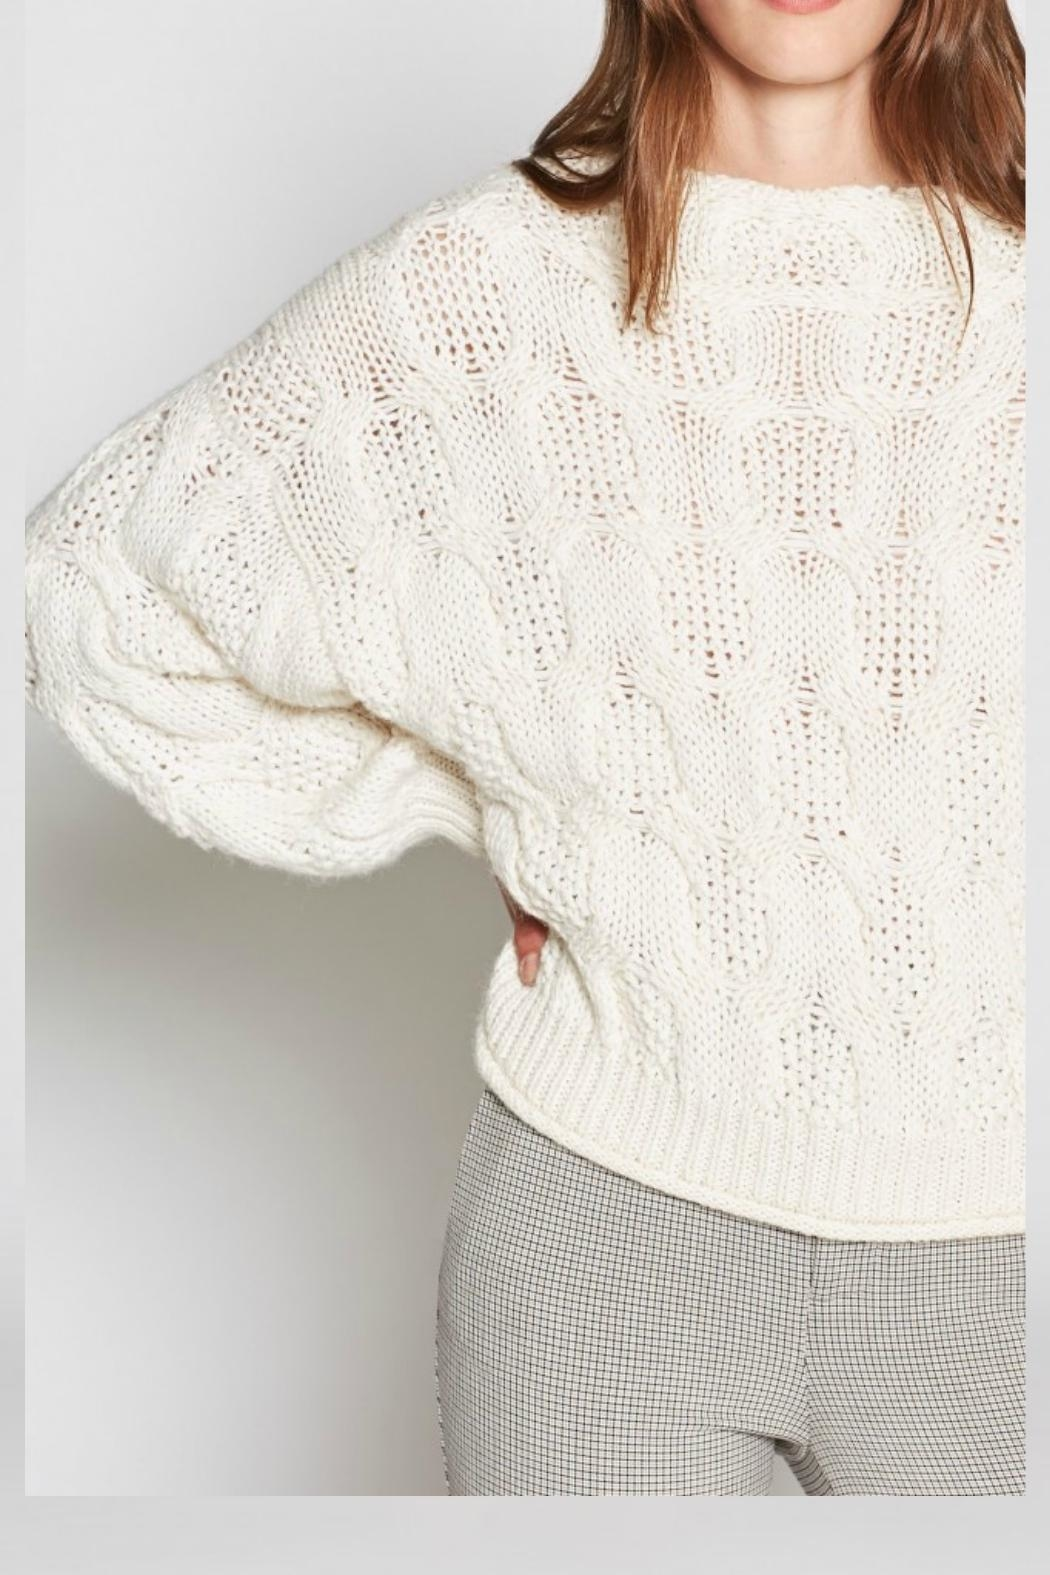 Joie Minava Cable Sweater - Side Cropped Image